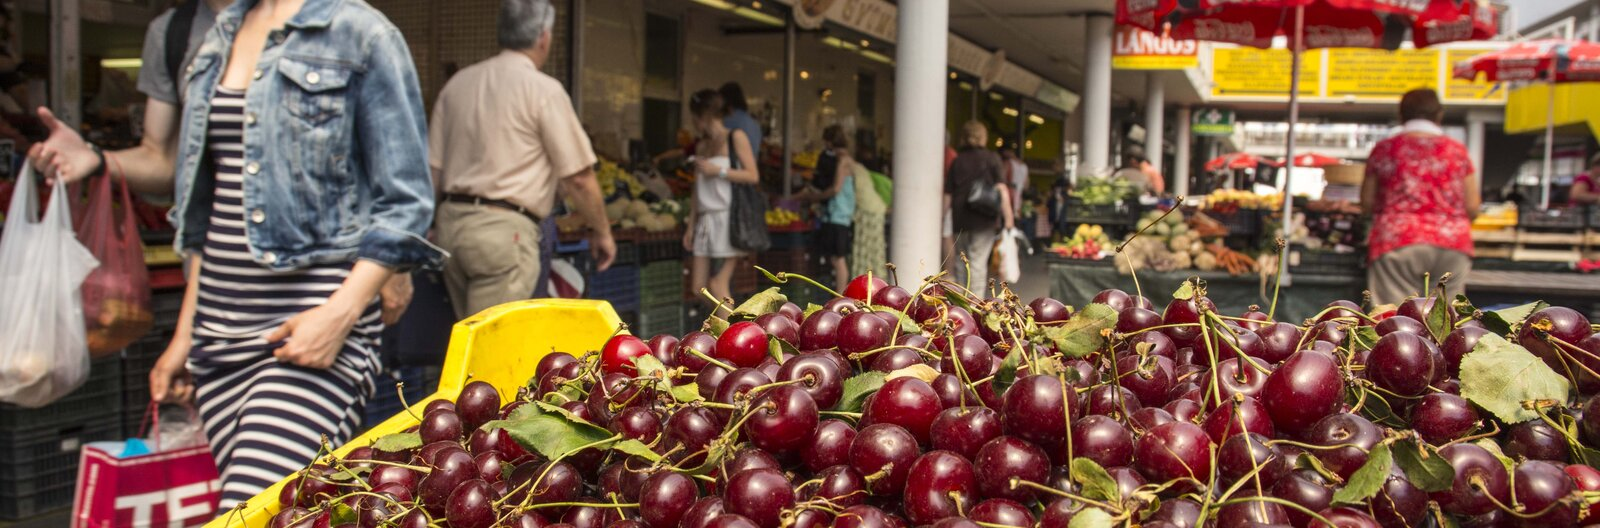 TOP 5+1 markets in Budapest